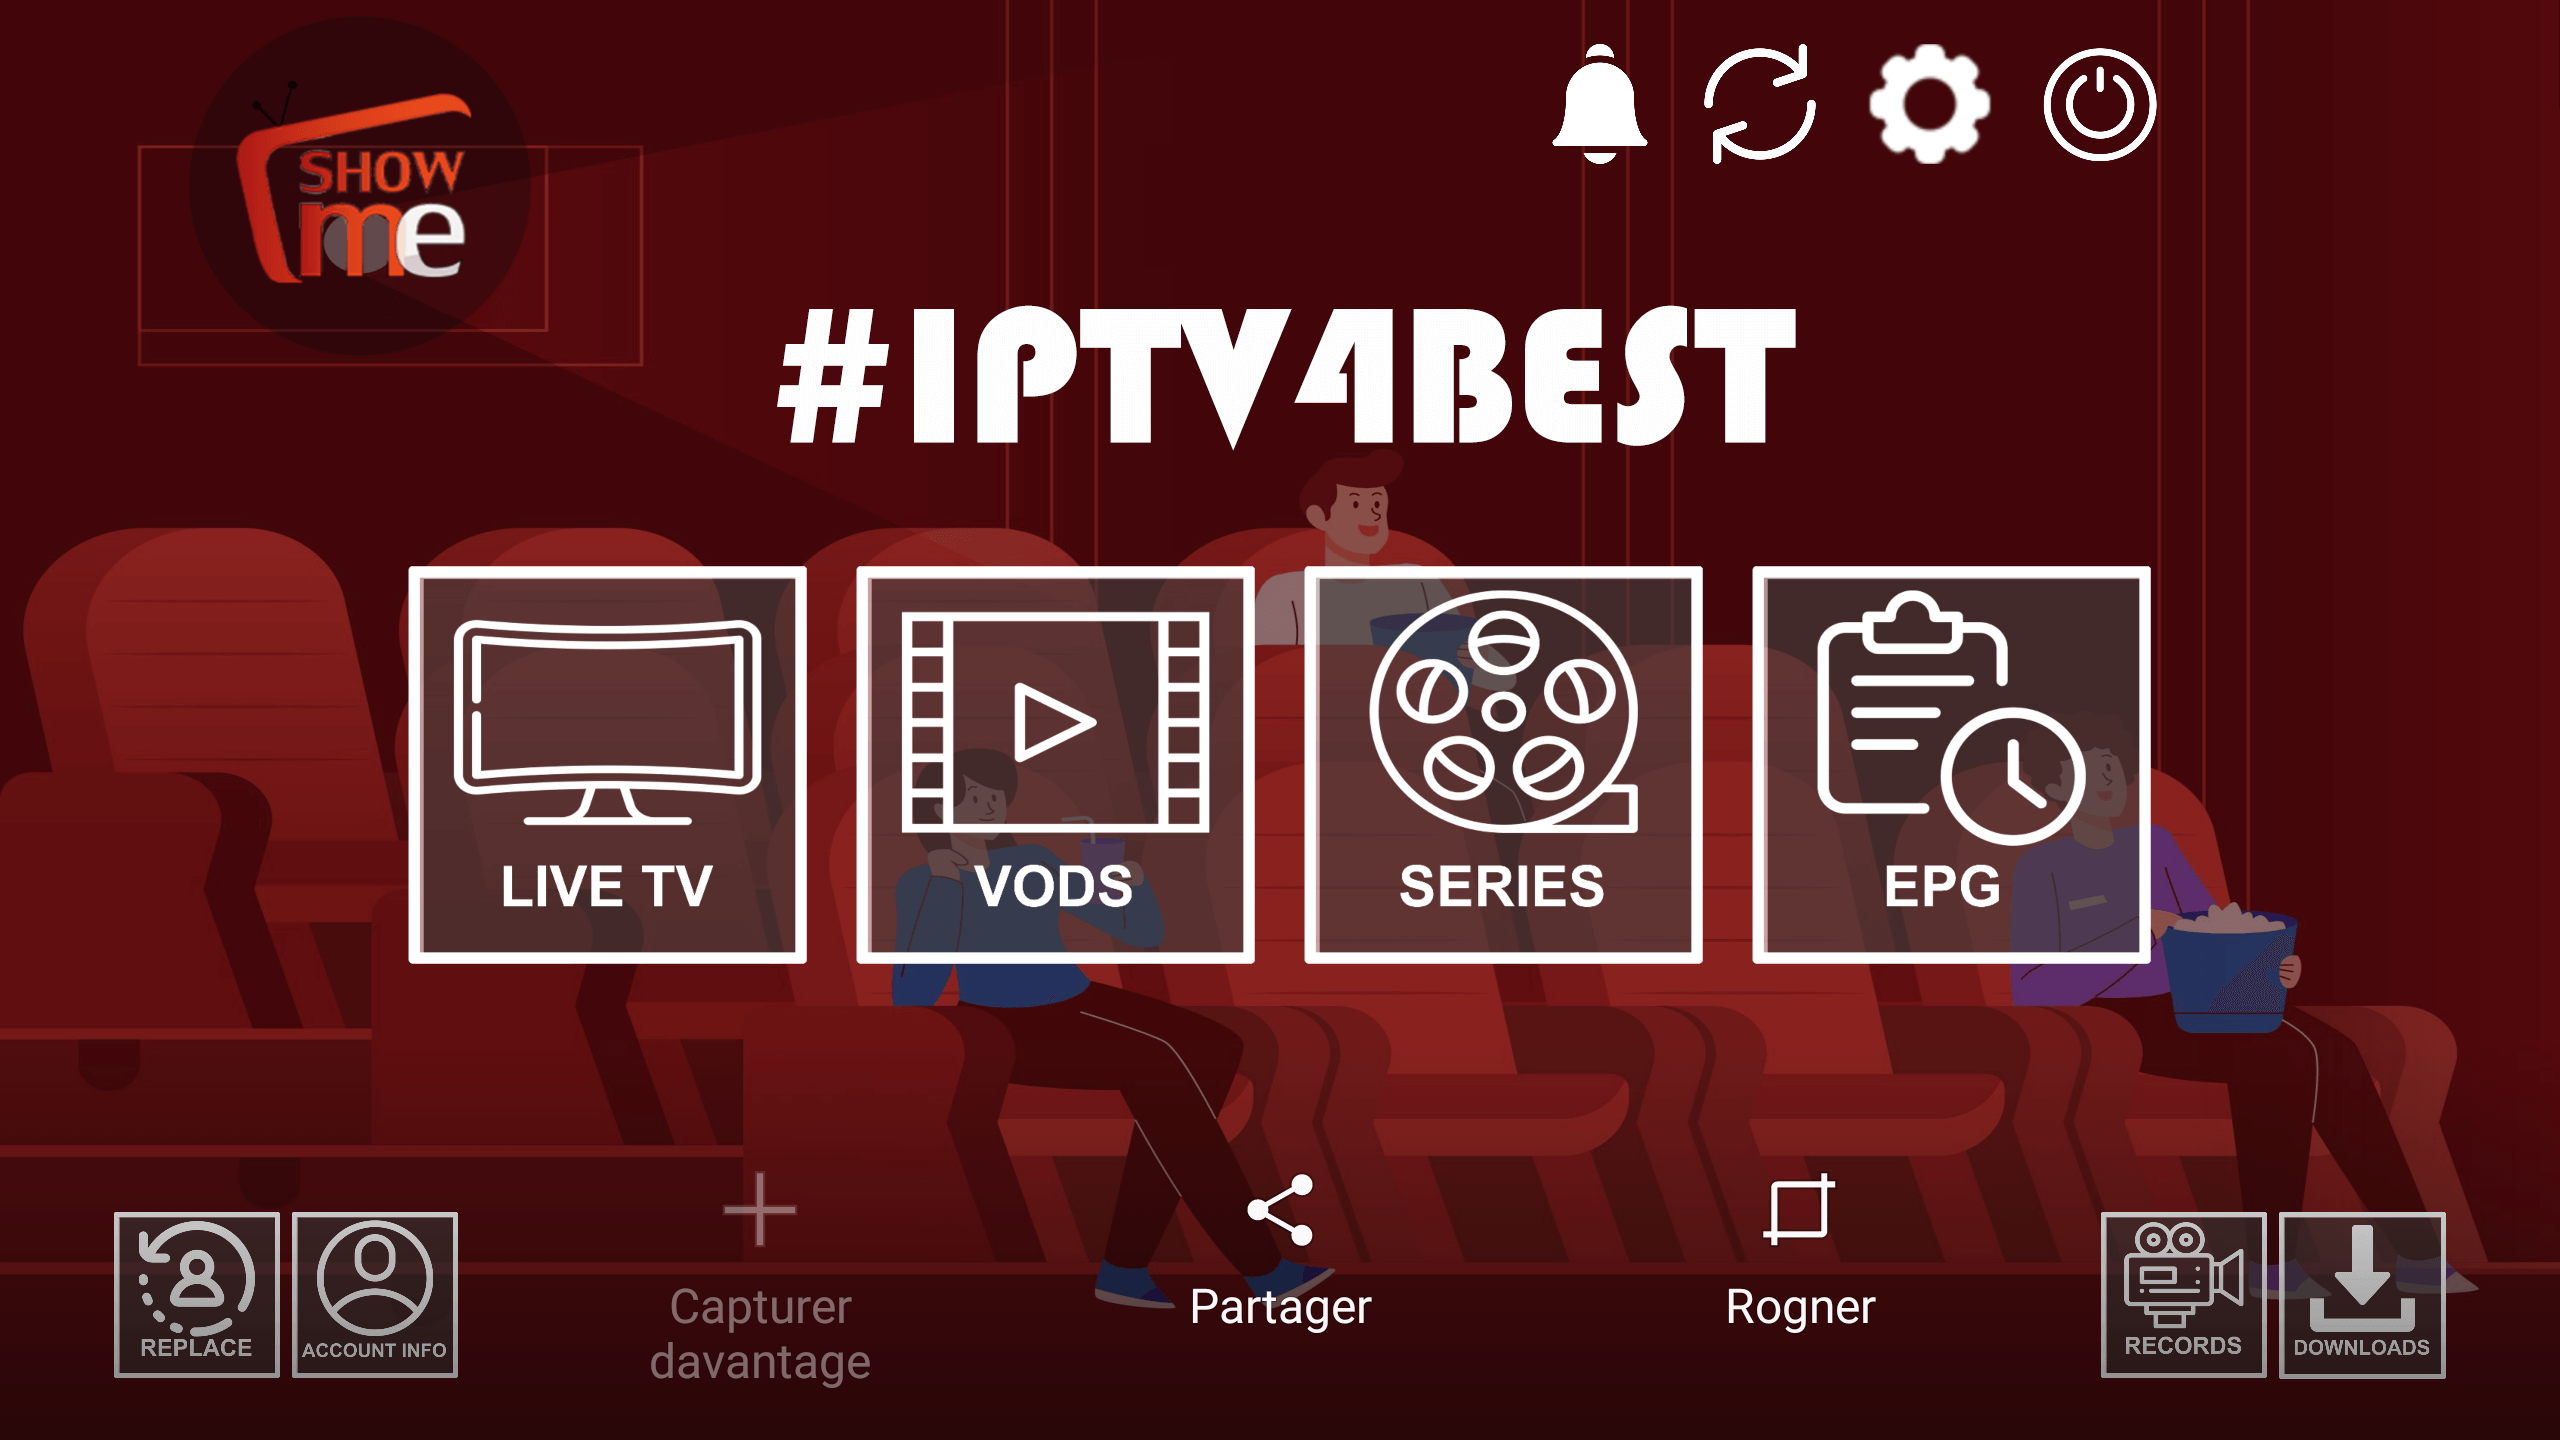 Show Me IPTv + Activation Code By IPTV4BEST